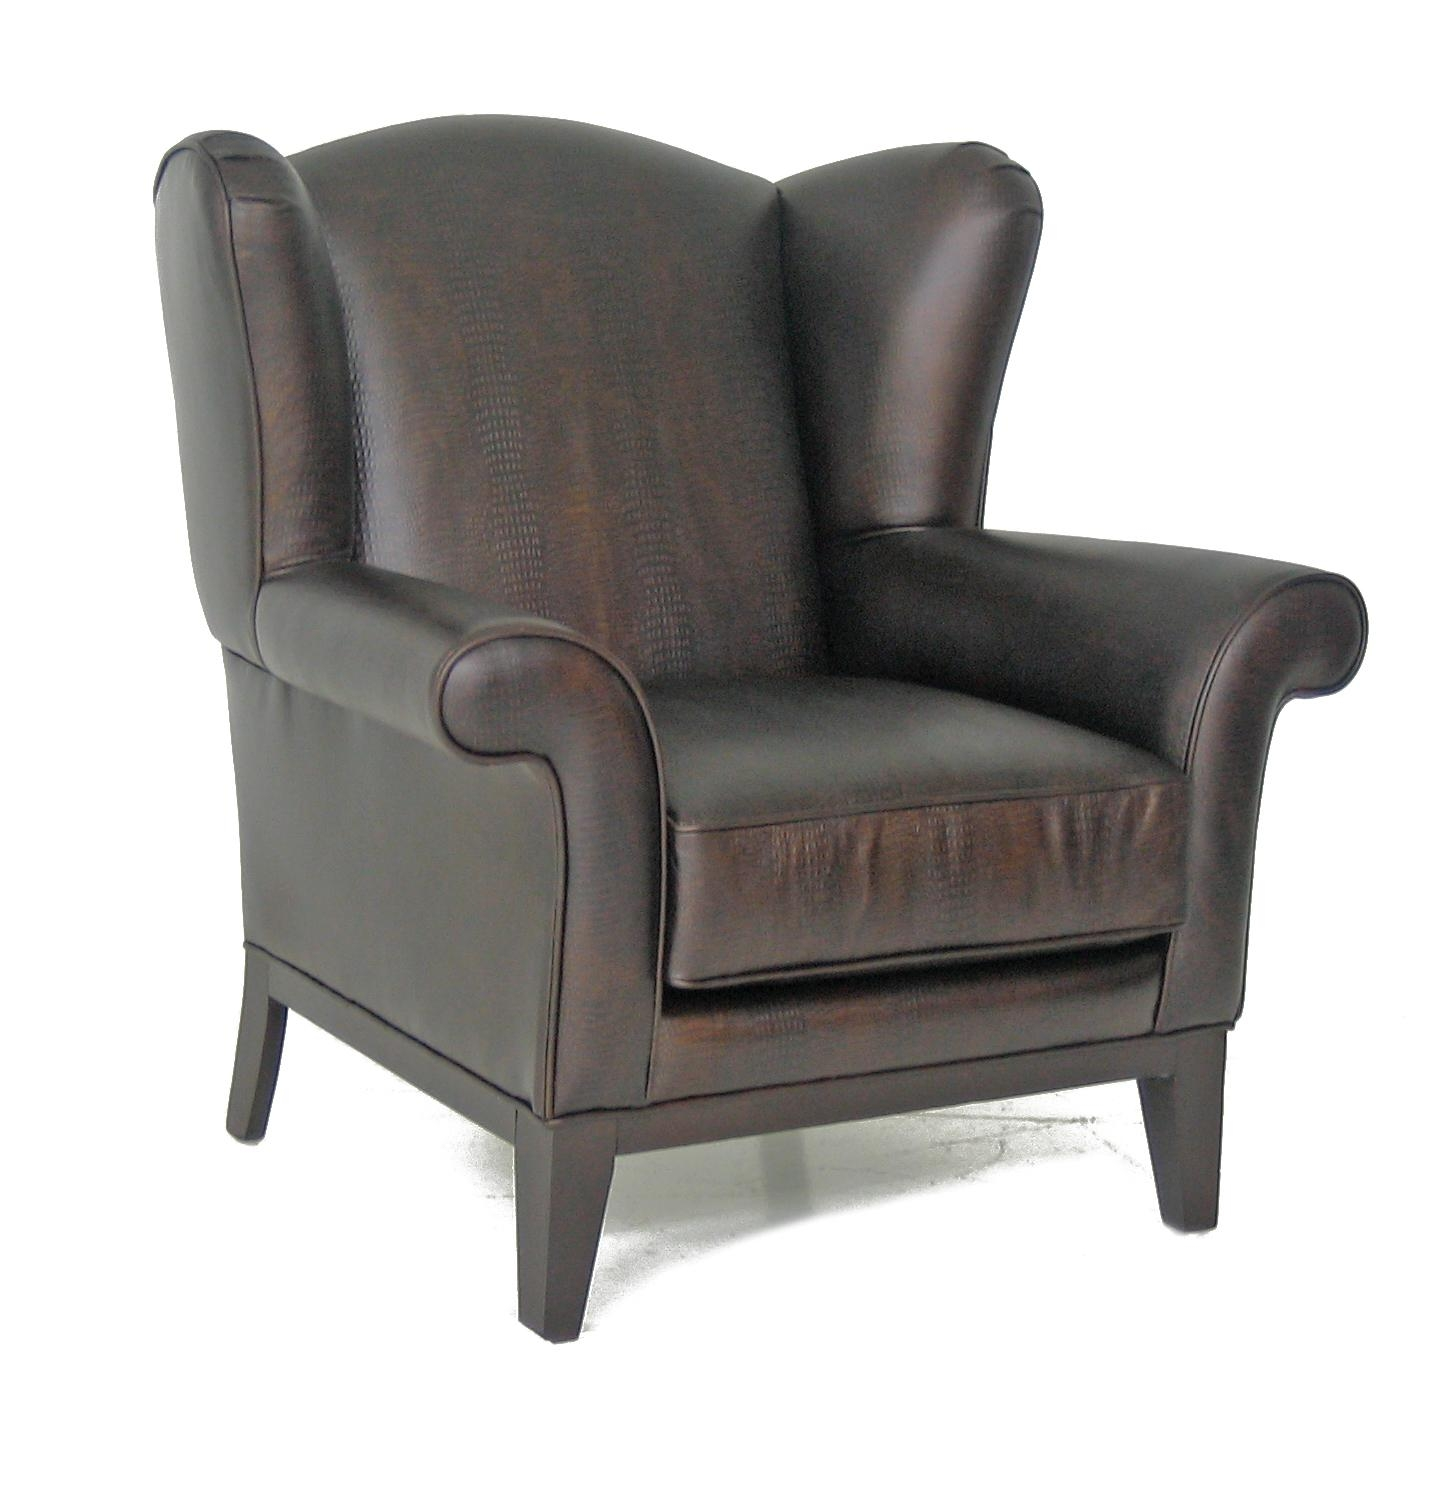 Leather Wingback Chair | Home Designlarizza For Chair Sofas (View 7 of 22)